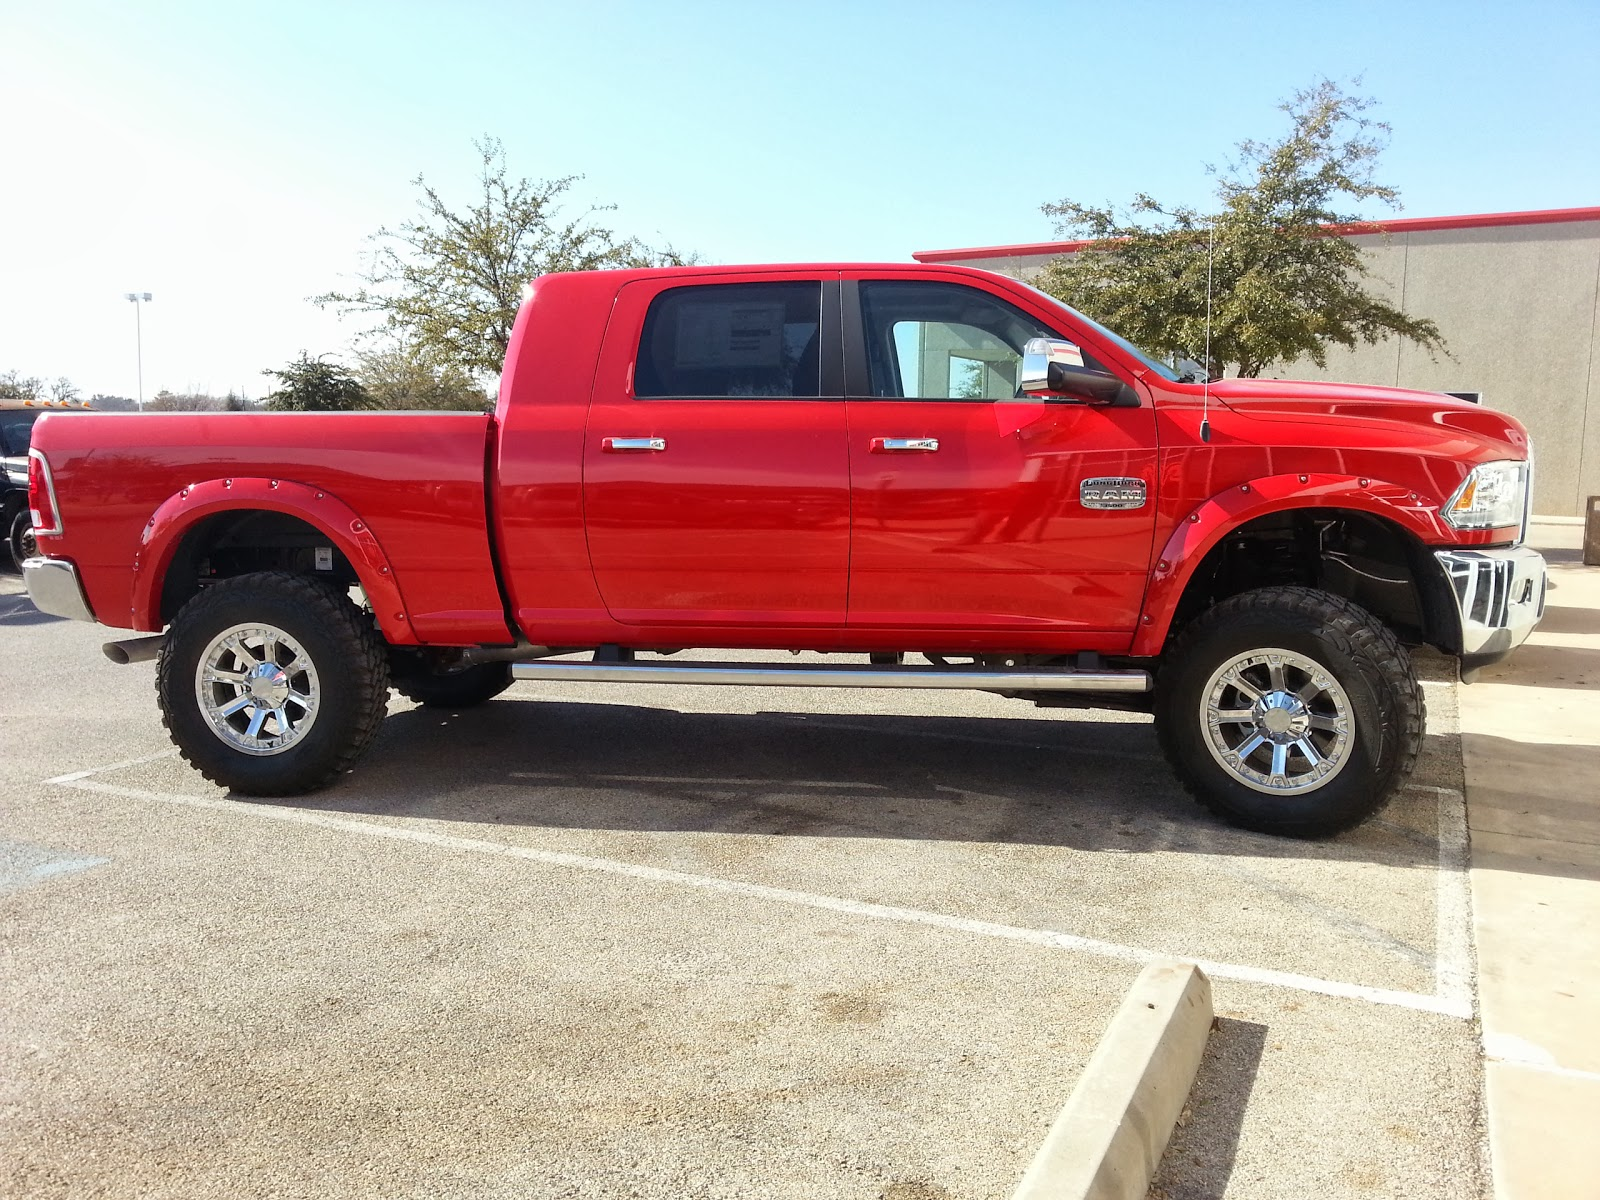 It s big it s bad it s red it s mud ready and tricked out 2014 ram 3500 mega cab cummins turbo diesel truck tdy sales 817 243 9840 call or text 24hrs